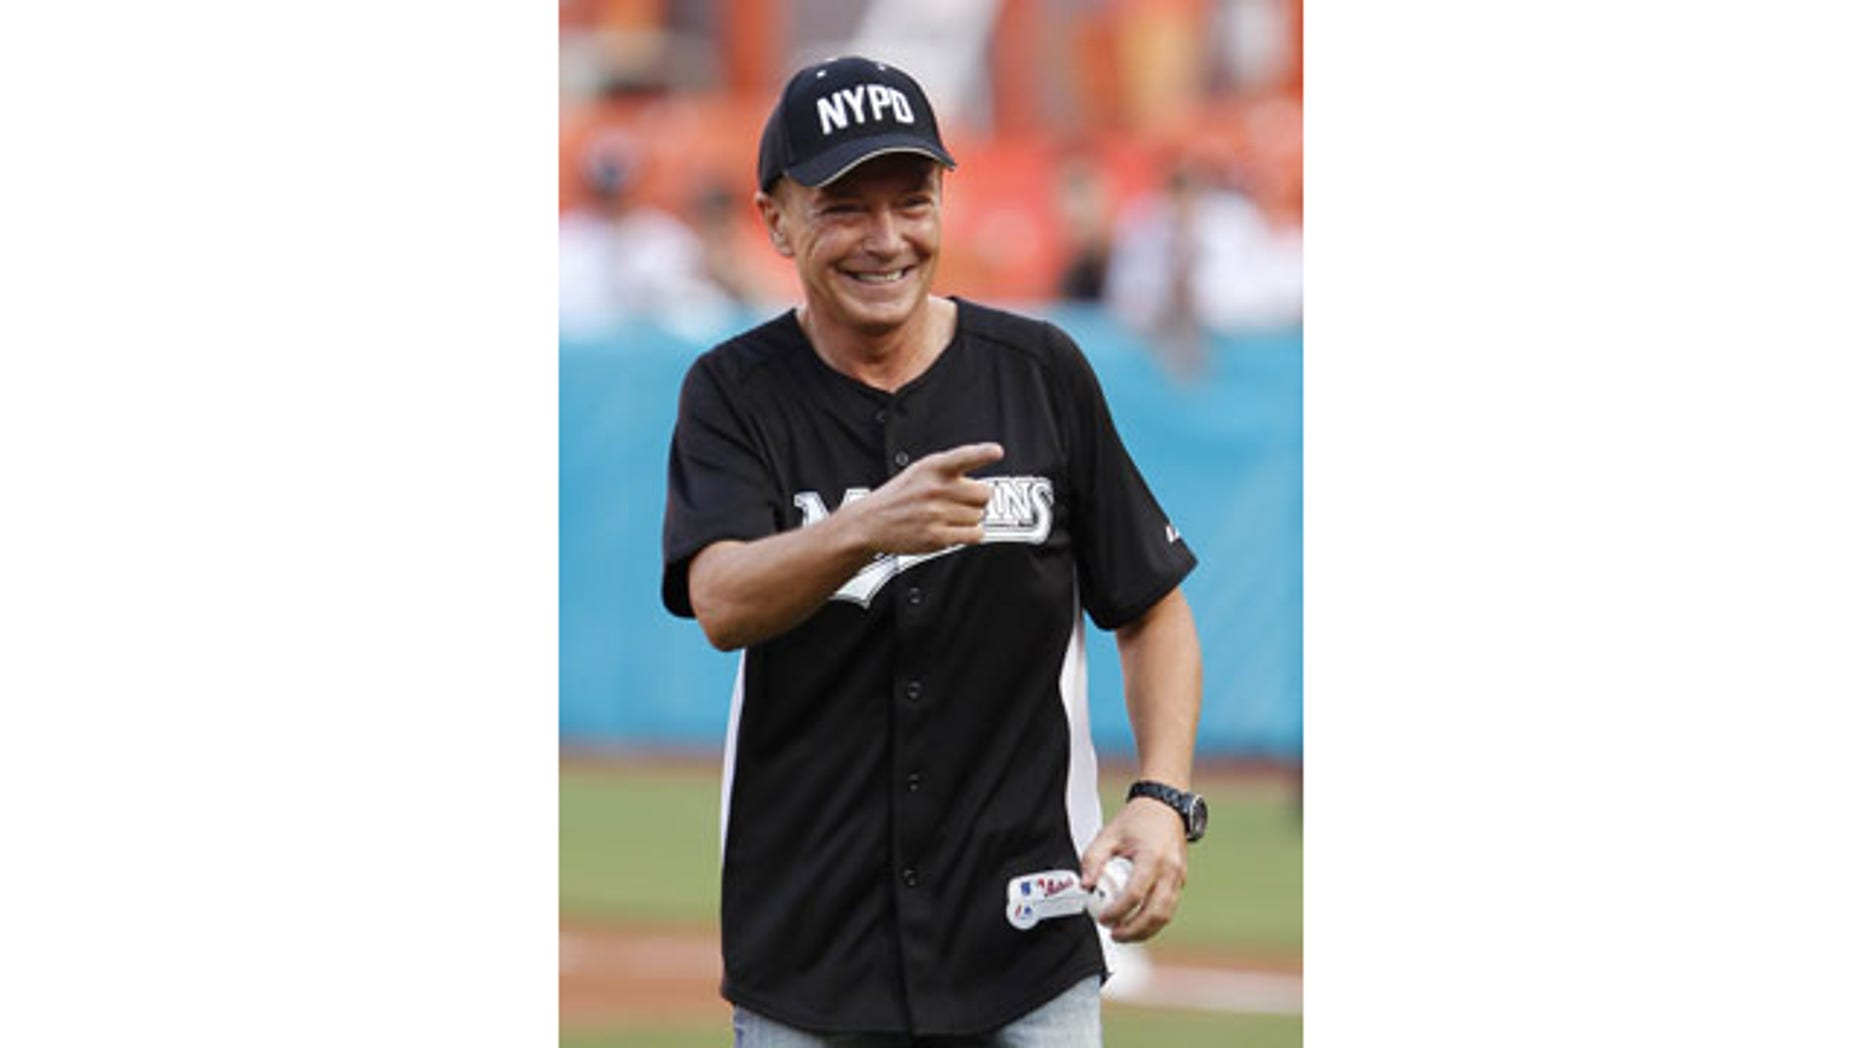 FILE - This July 9, 2011 file photo shows actor David Cassidy after throwing out a ceremonial first pitch before a baseball game between the Florida Marlins and the Houston Astros, in Miami. (AP Photo)